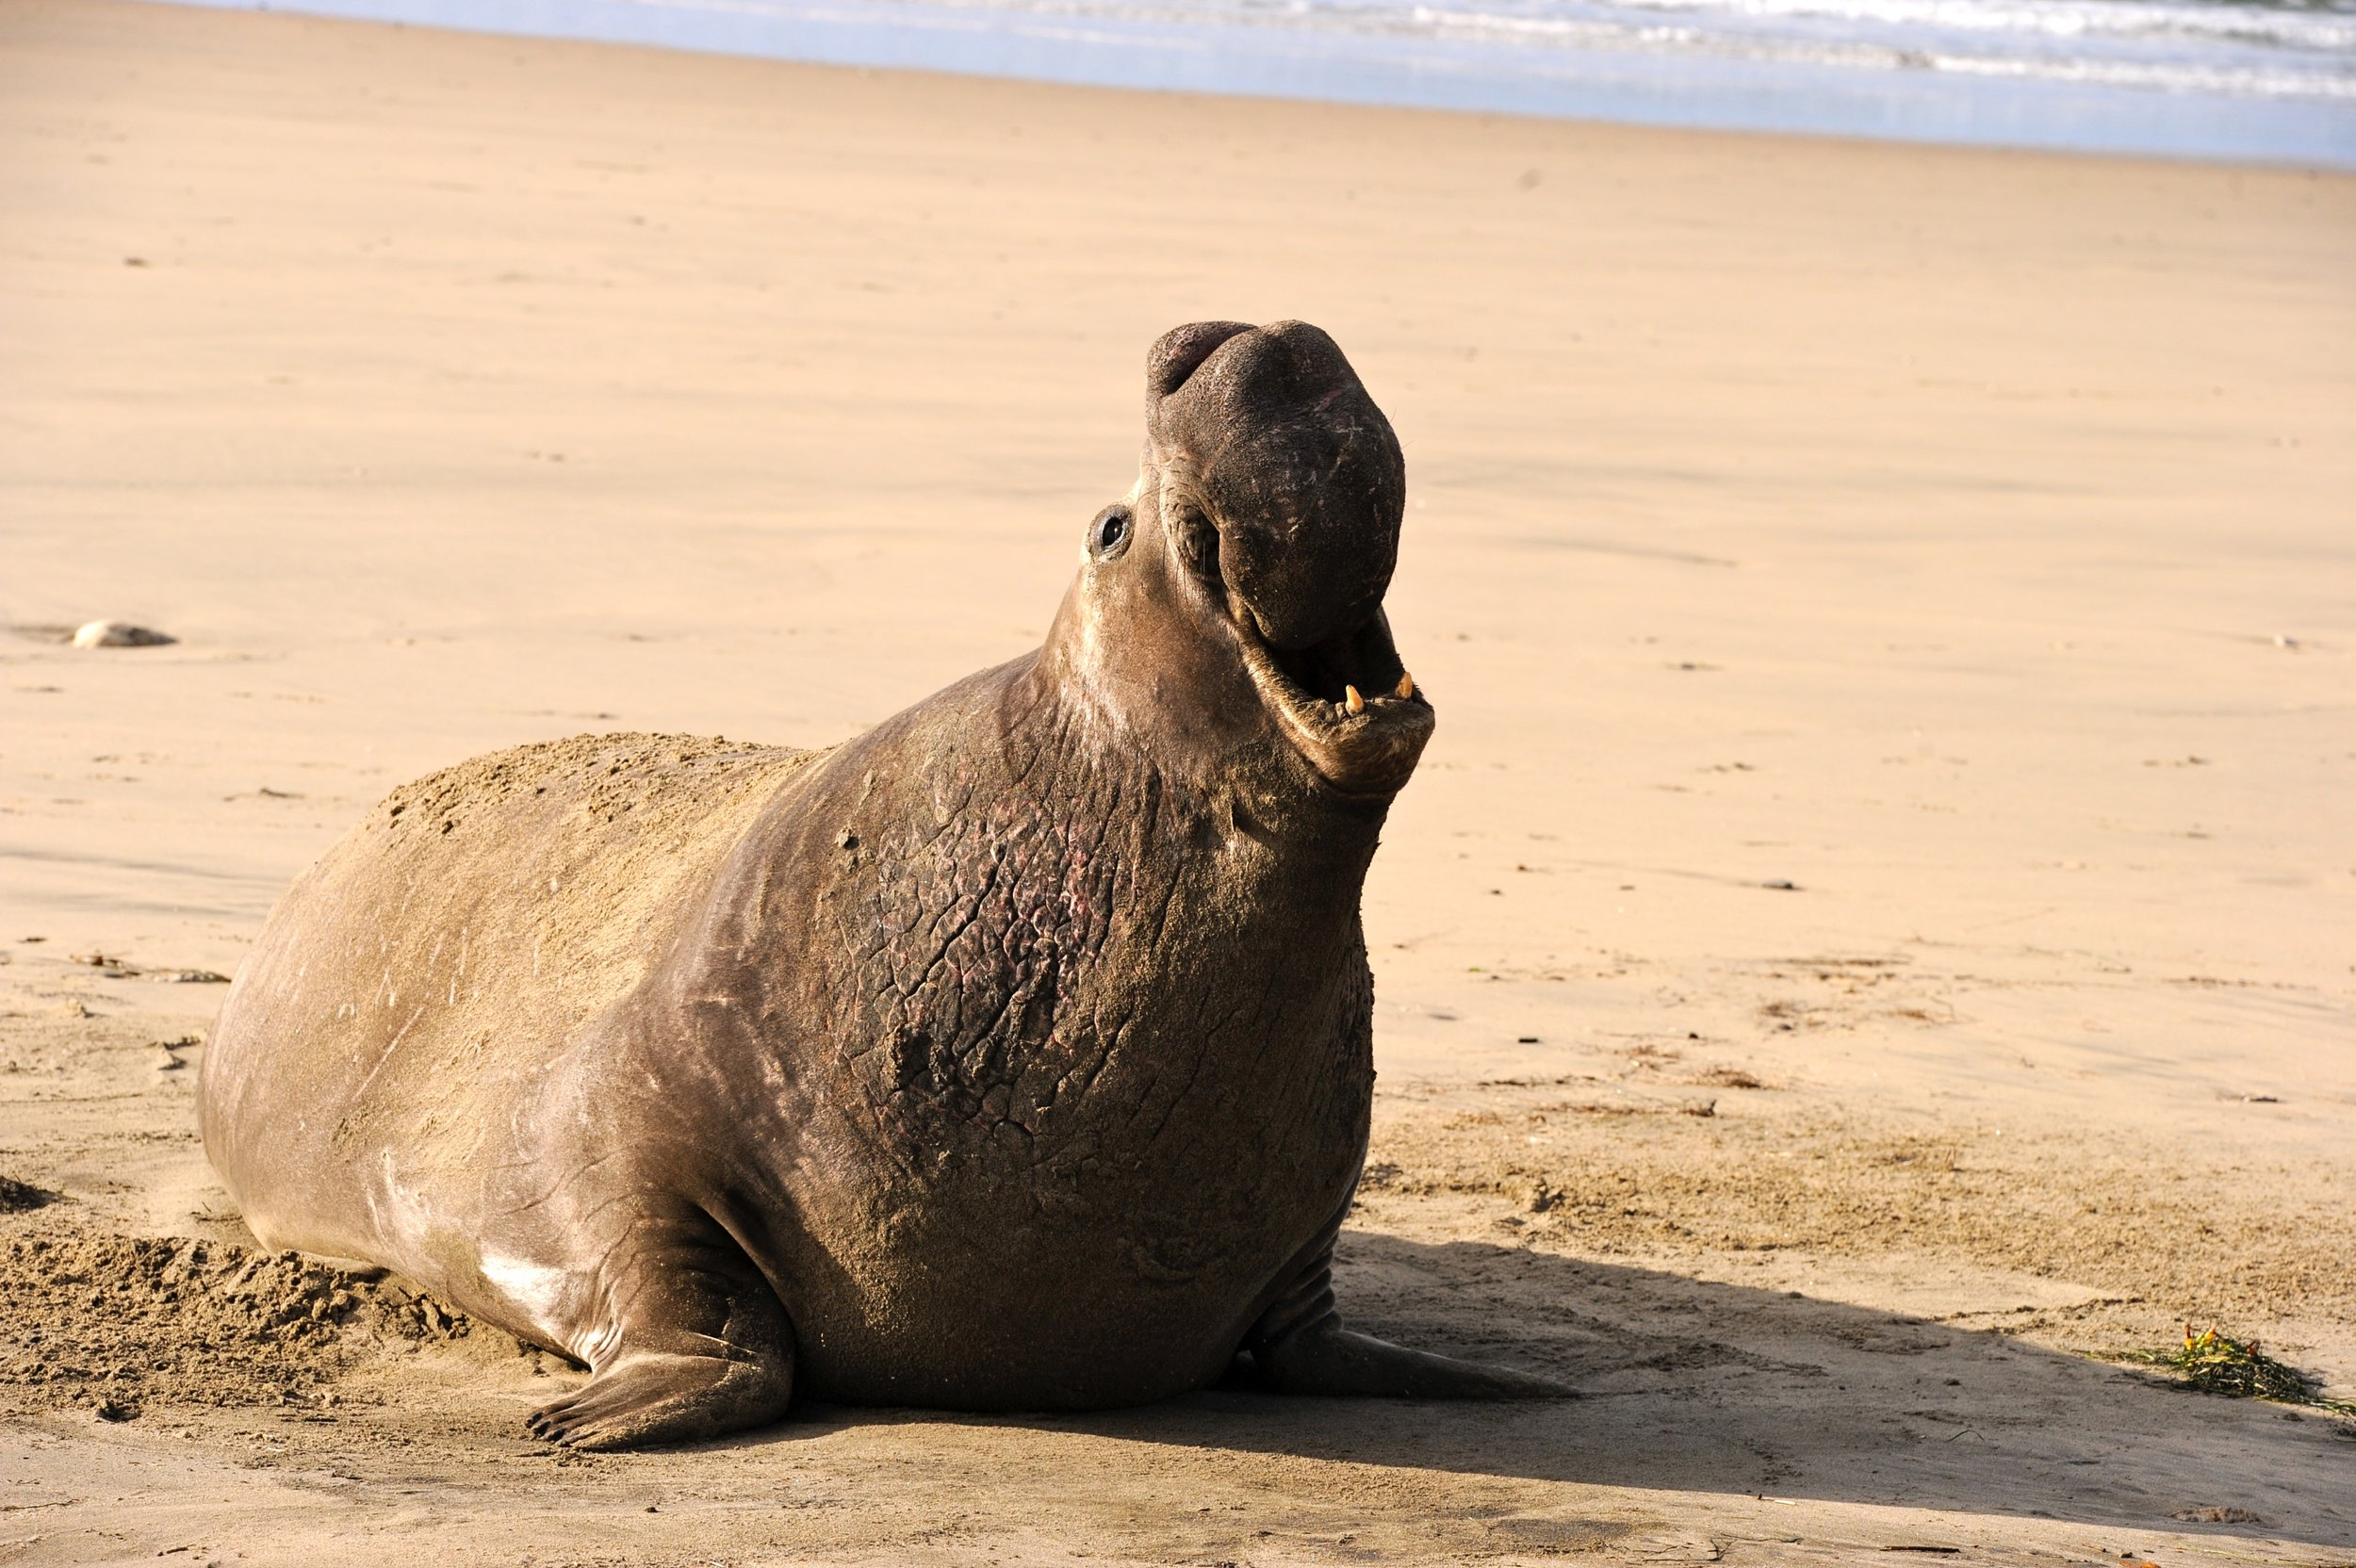 in the media - Check out this CBS news story to learn more about the secret lives of elephant seals